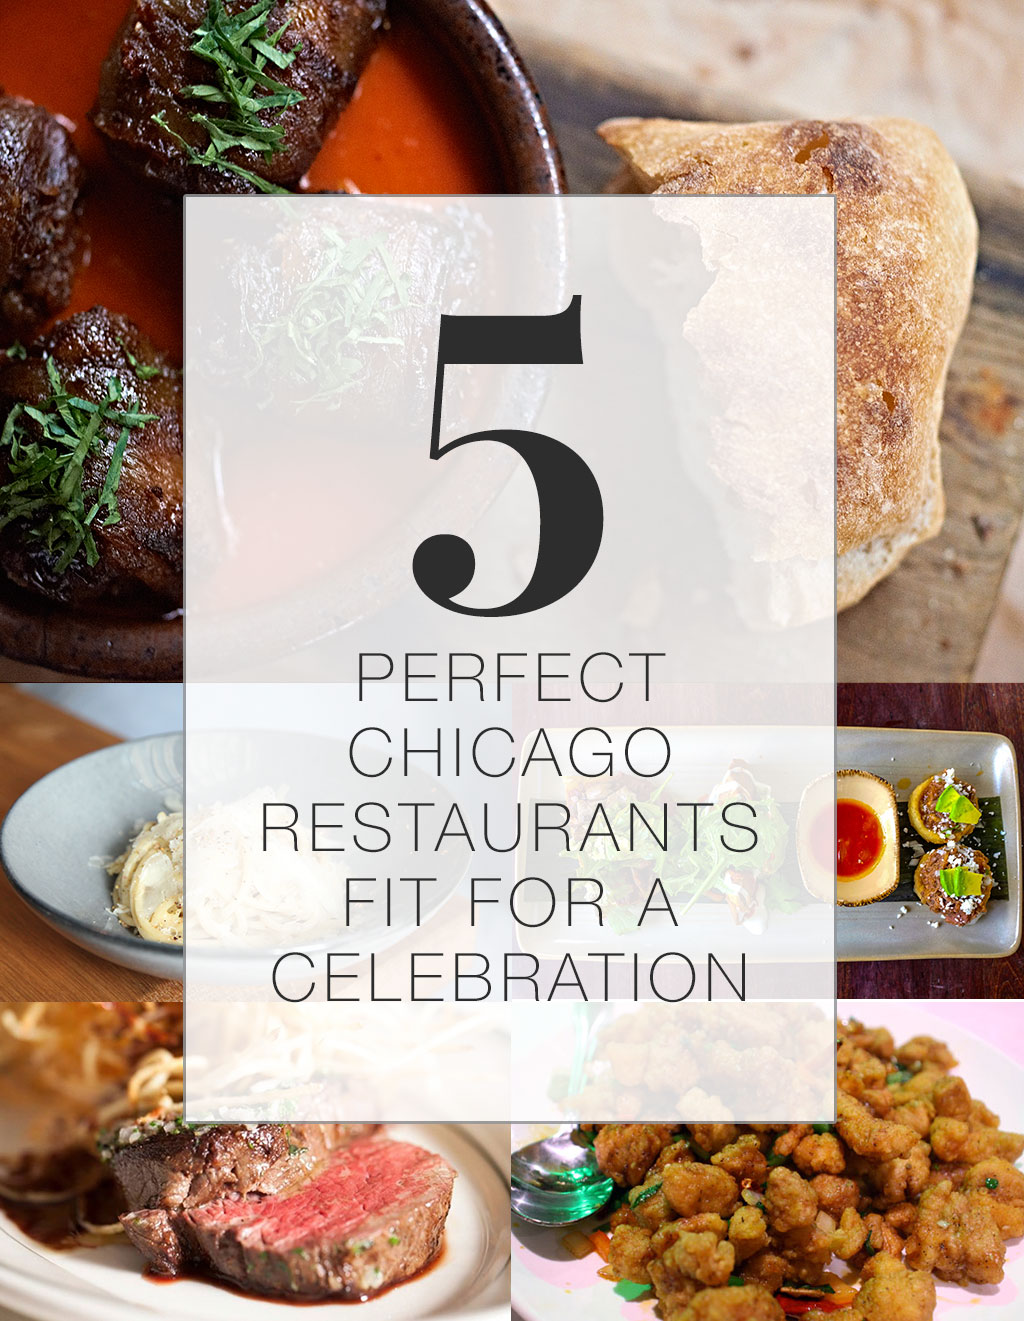 5 Perfect Chicago Restaurants fit for a Celebration | Avec, Monteverde, Frontera Grill, Joe's Seafood, Prime Steak & Stone Crab, Lao Sze Chuan